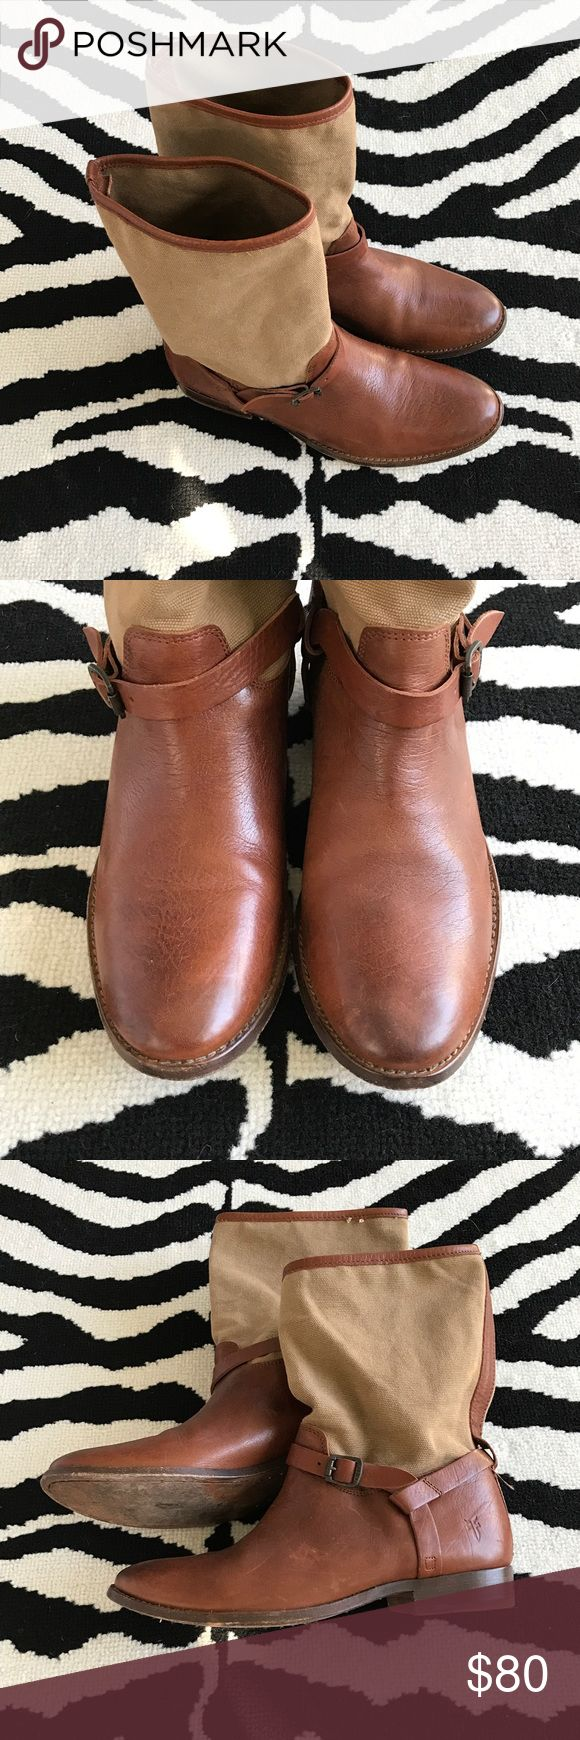 FRYE Melissa Boots Leather boot with canvas shafts. Very good used condition! Clean with little scuffing. Frye Shoes Ankle Boots & Booties